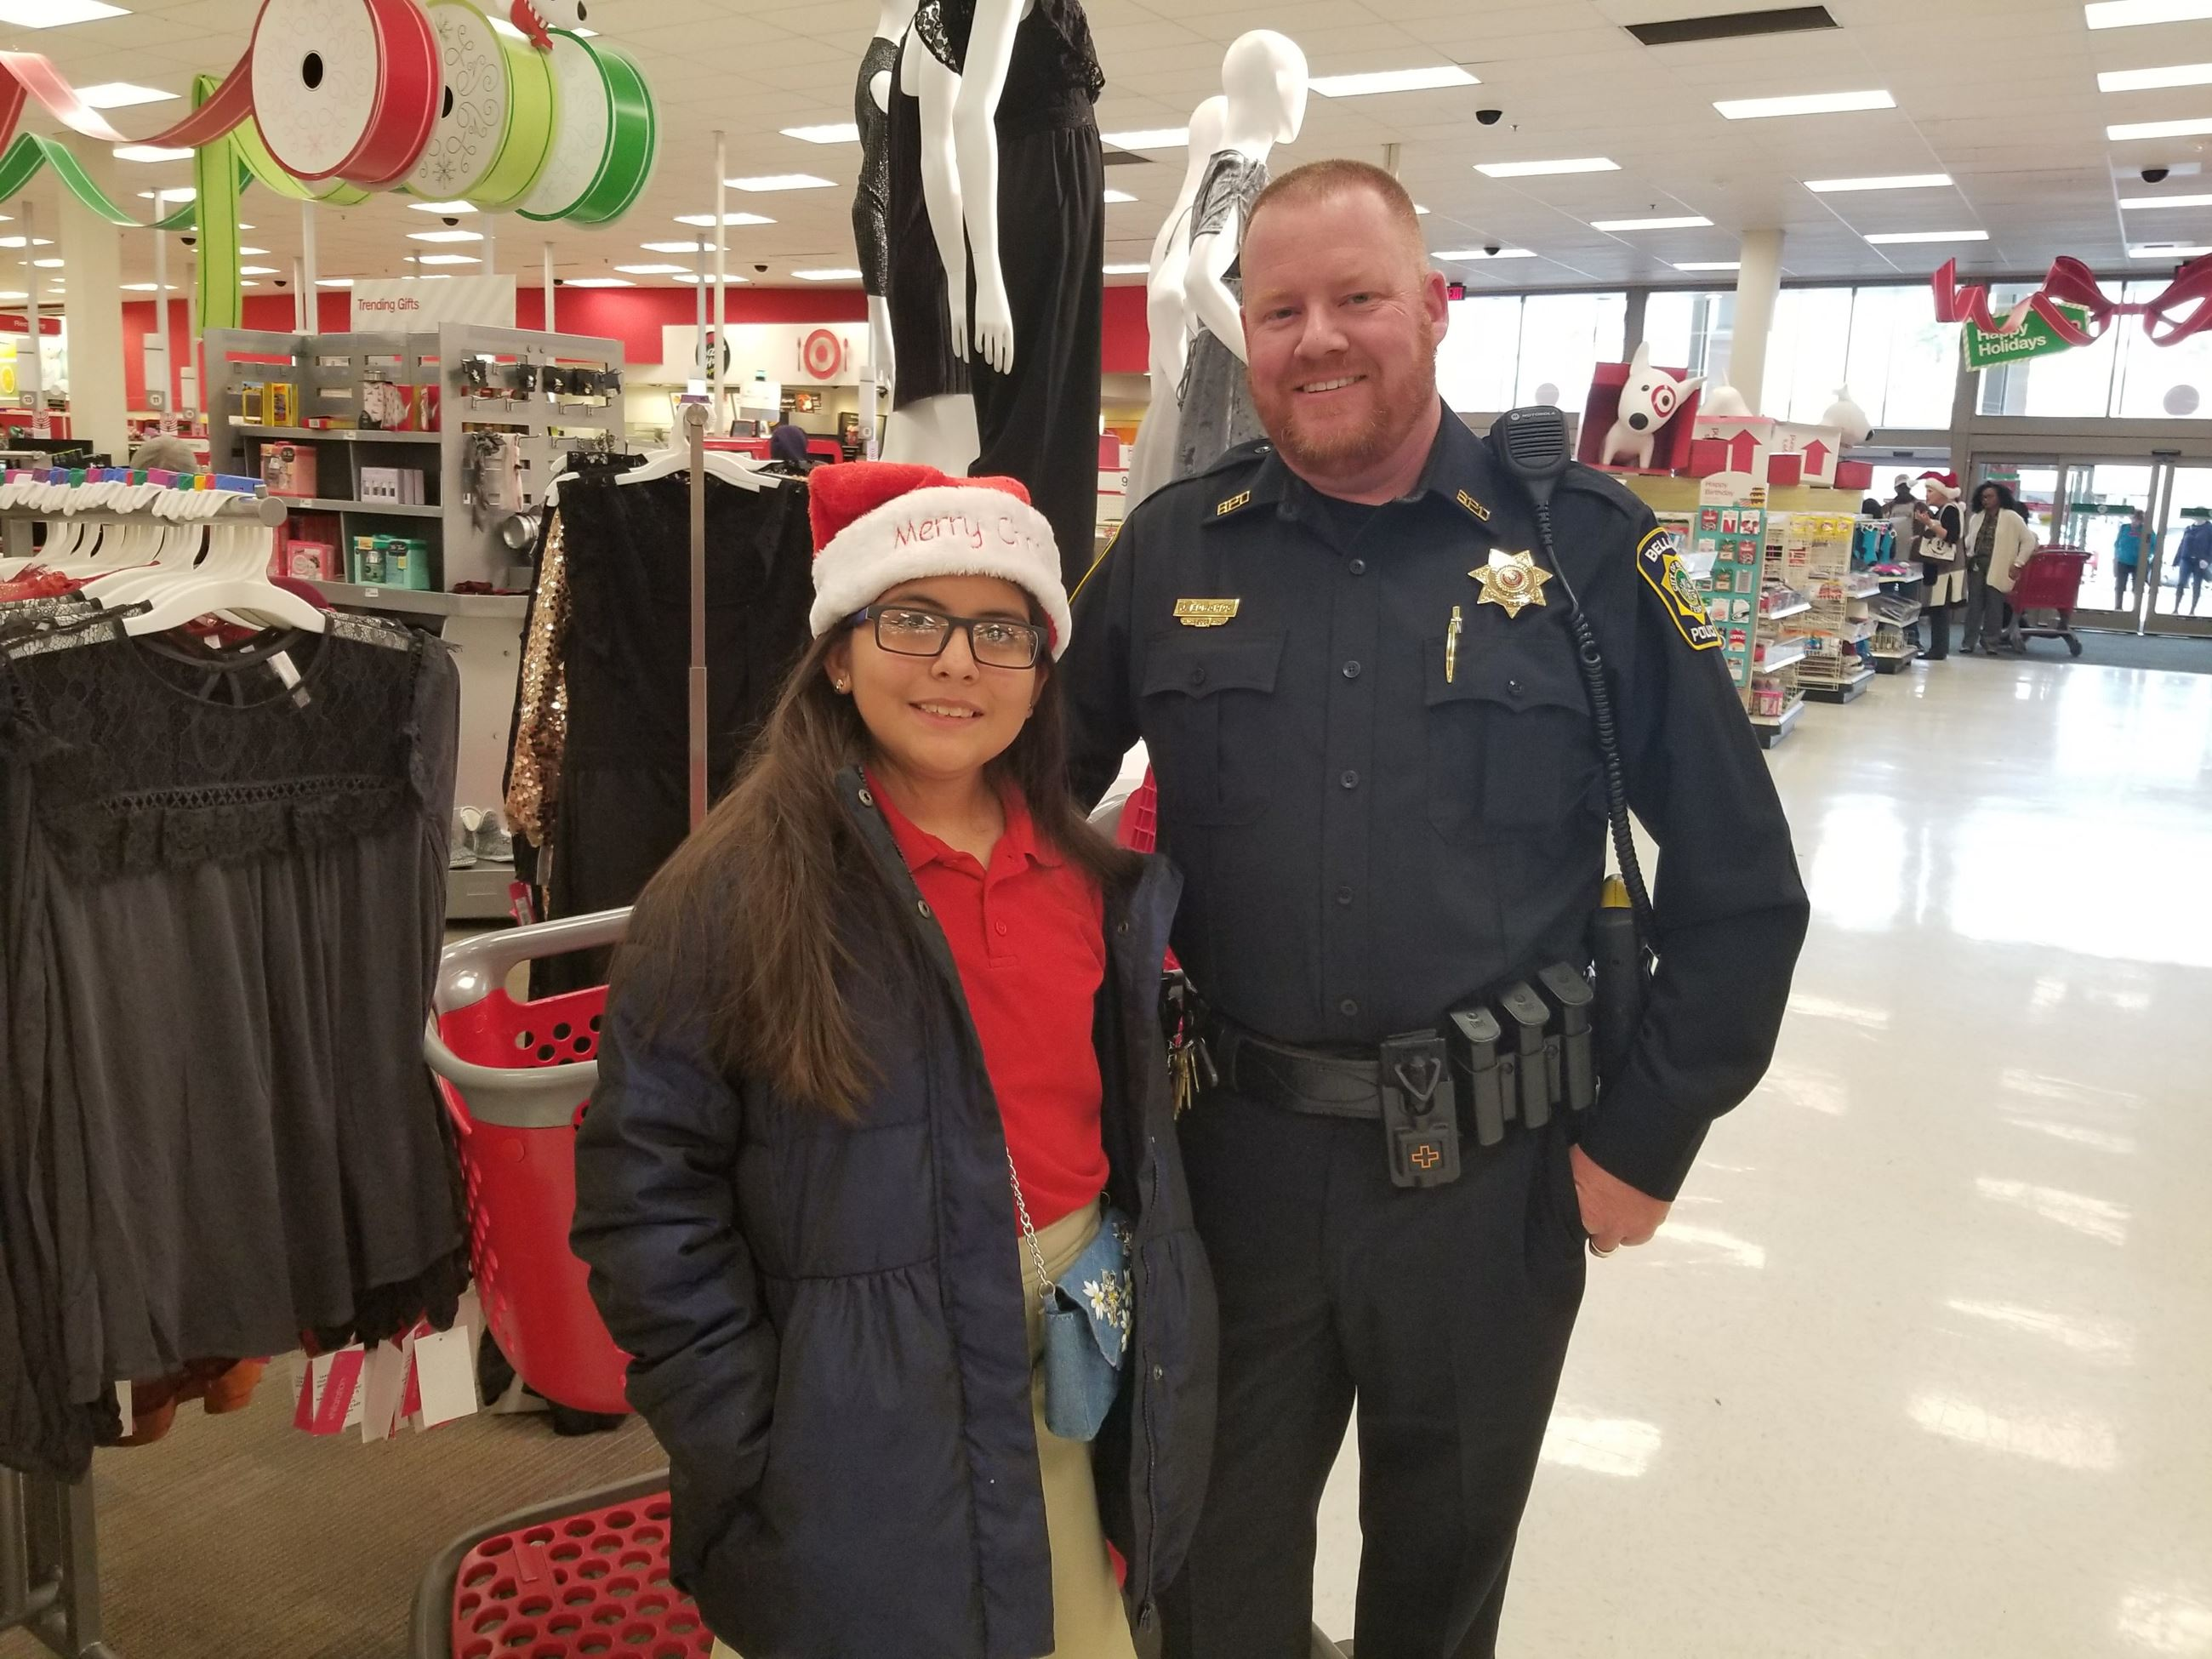 Officer and girl smile together at Shop with a Cop event